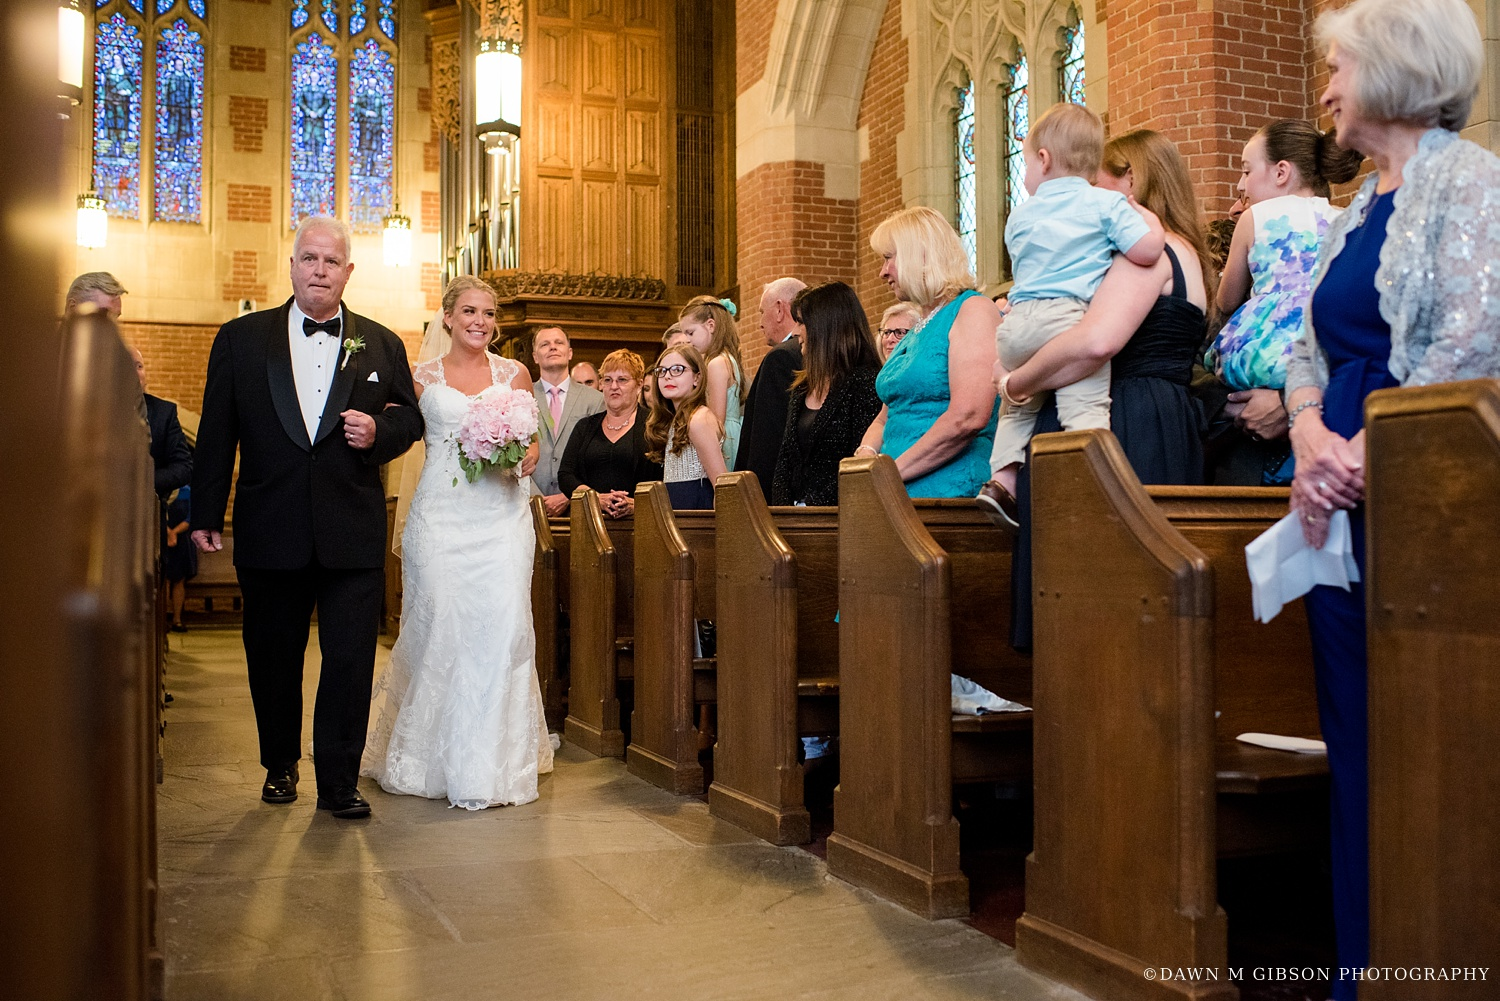 buffalo_wny_rochester_wedding_photographer_dawnmgibsonphotography_strathallan_colgate_rochester_divinity_rochester_wedding_venues_0045.jpg